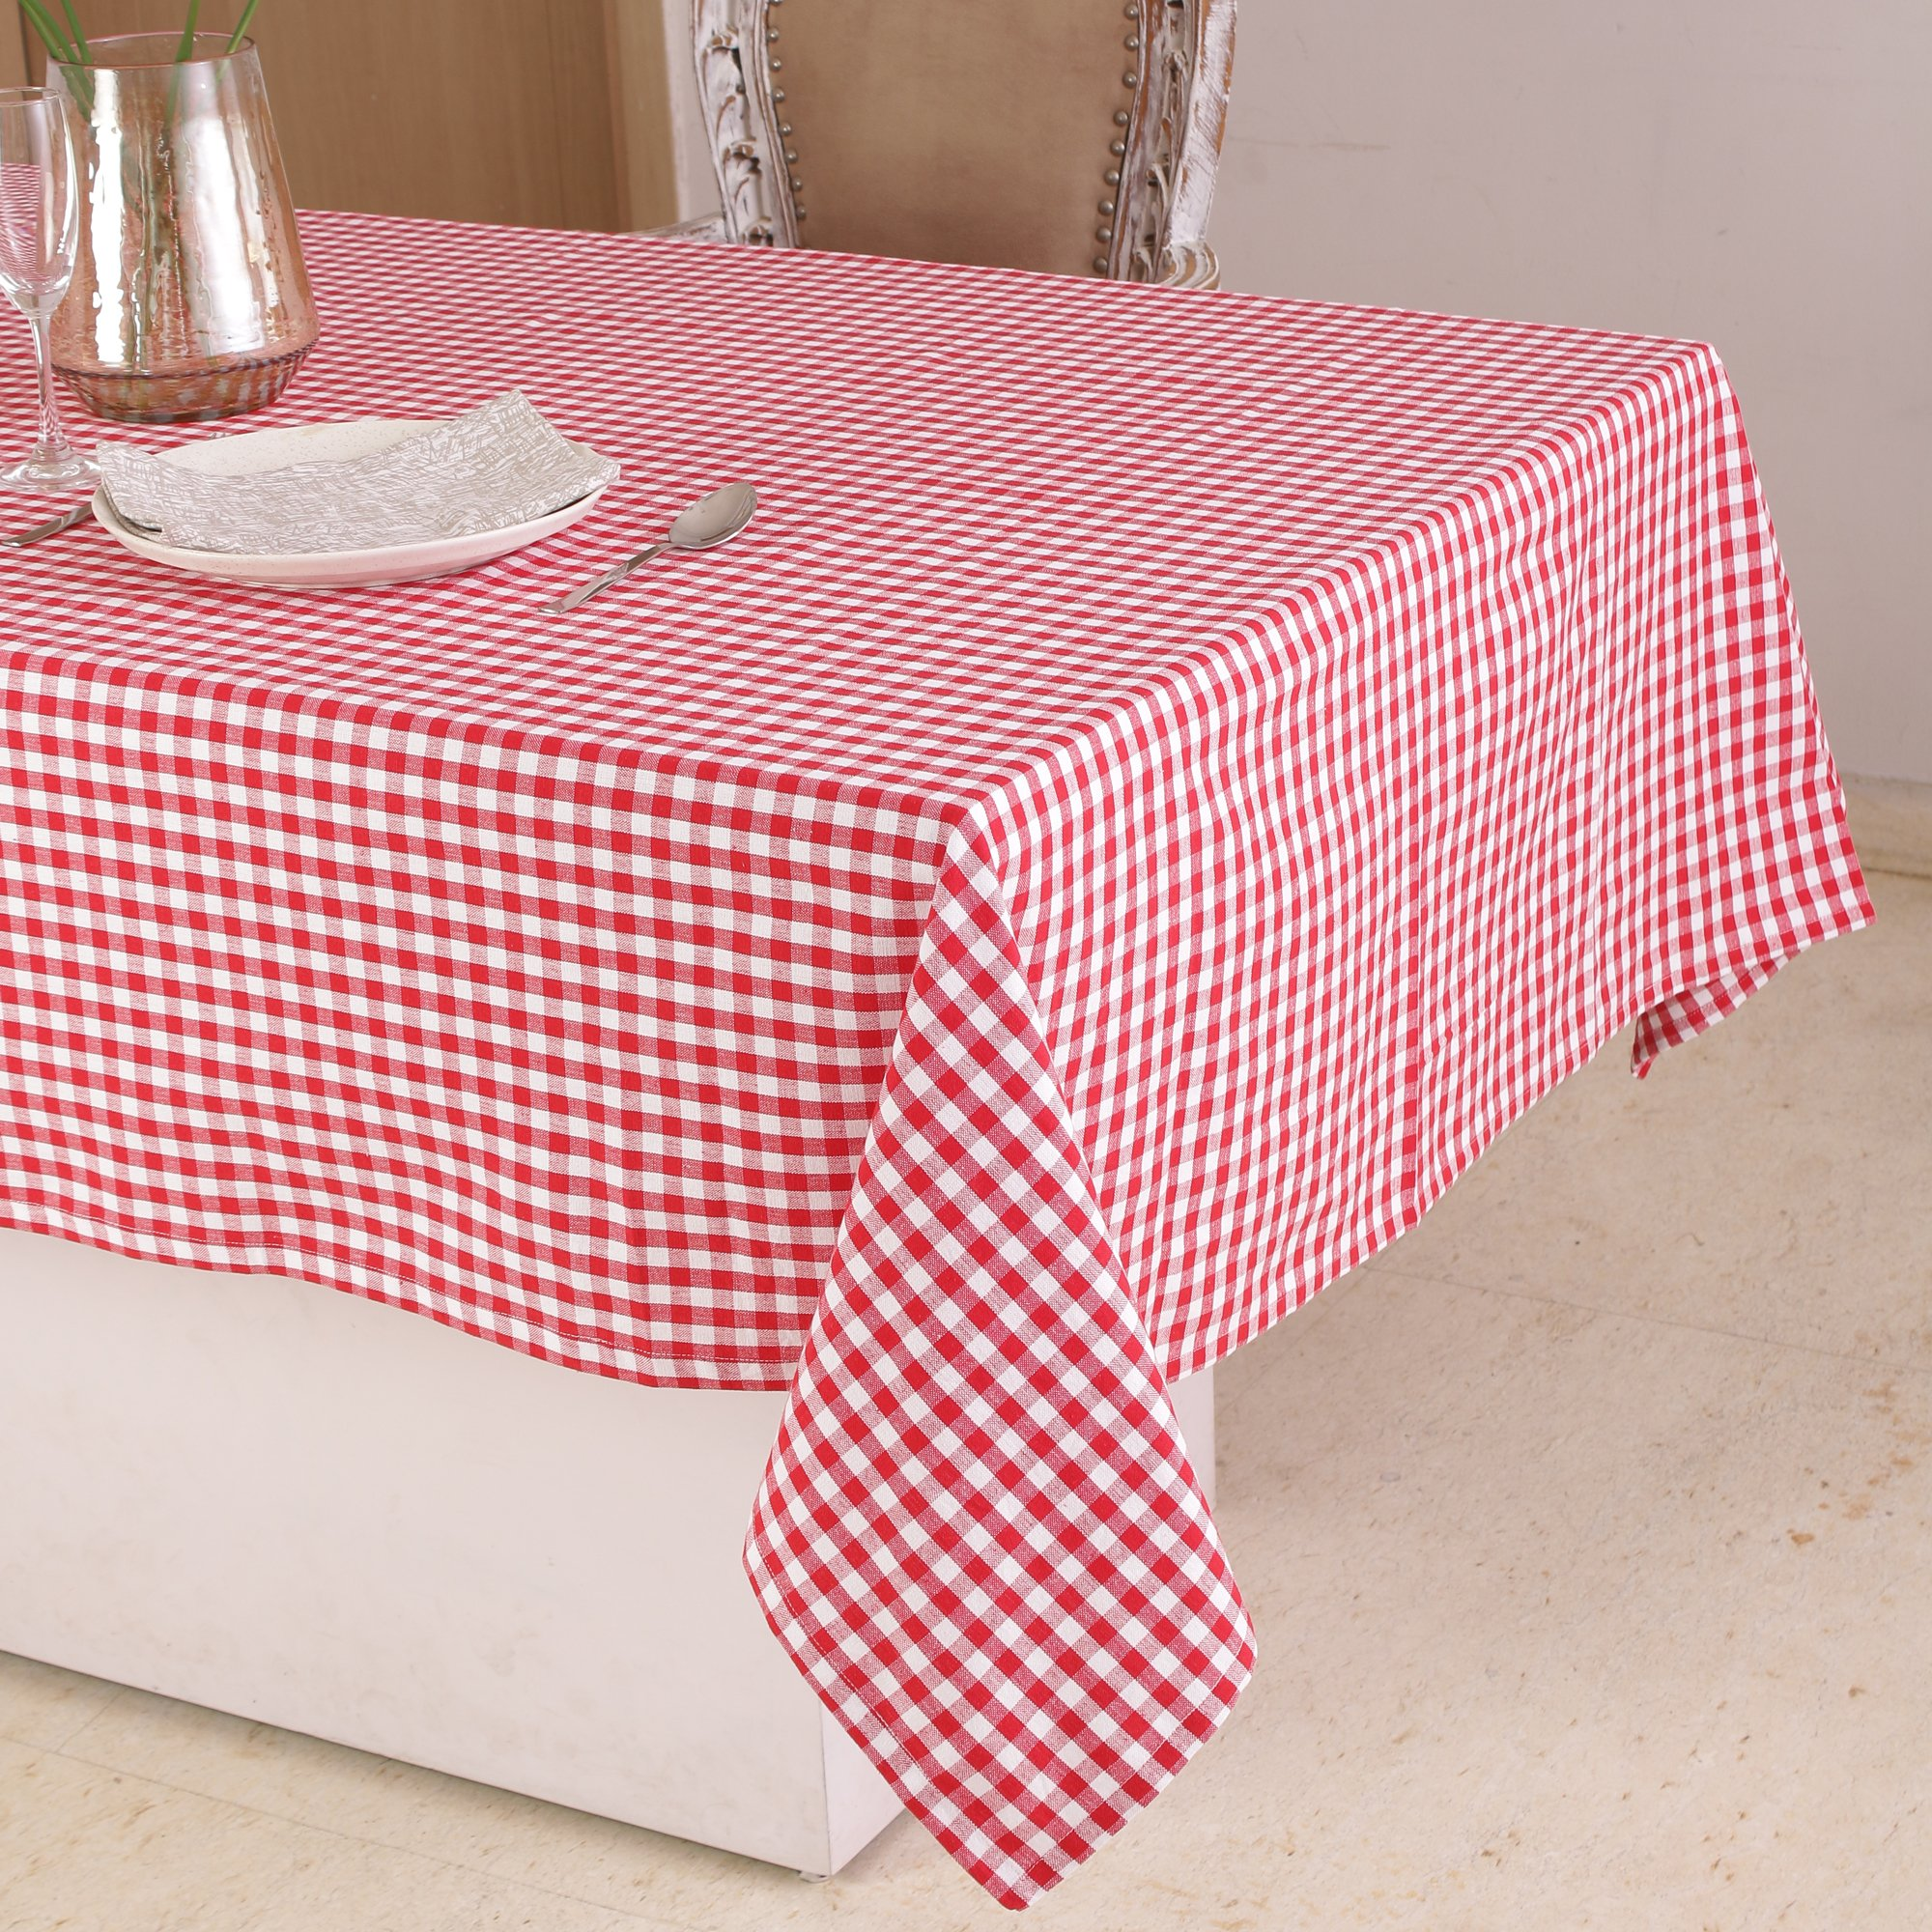 Cotton Square Table Cloth (52 x 52 Inches), Red & White Check - Perfect For Spring, Summer, Holidays - Christmas And For Everyday Use